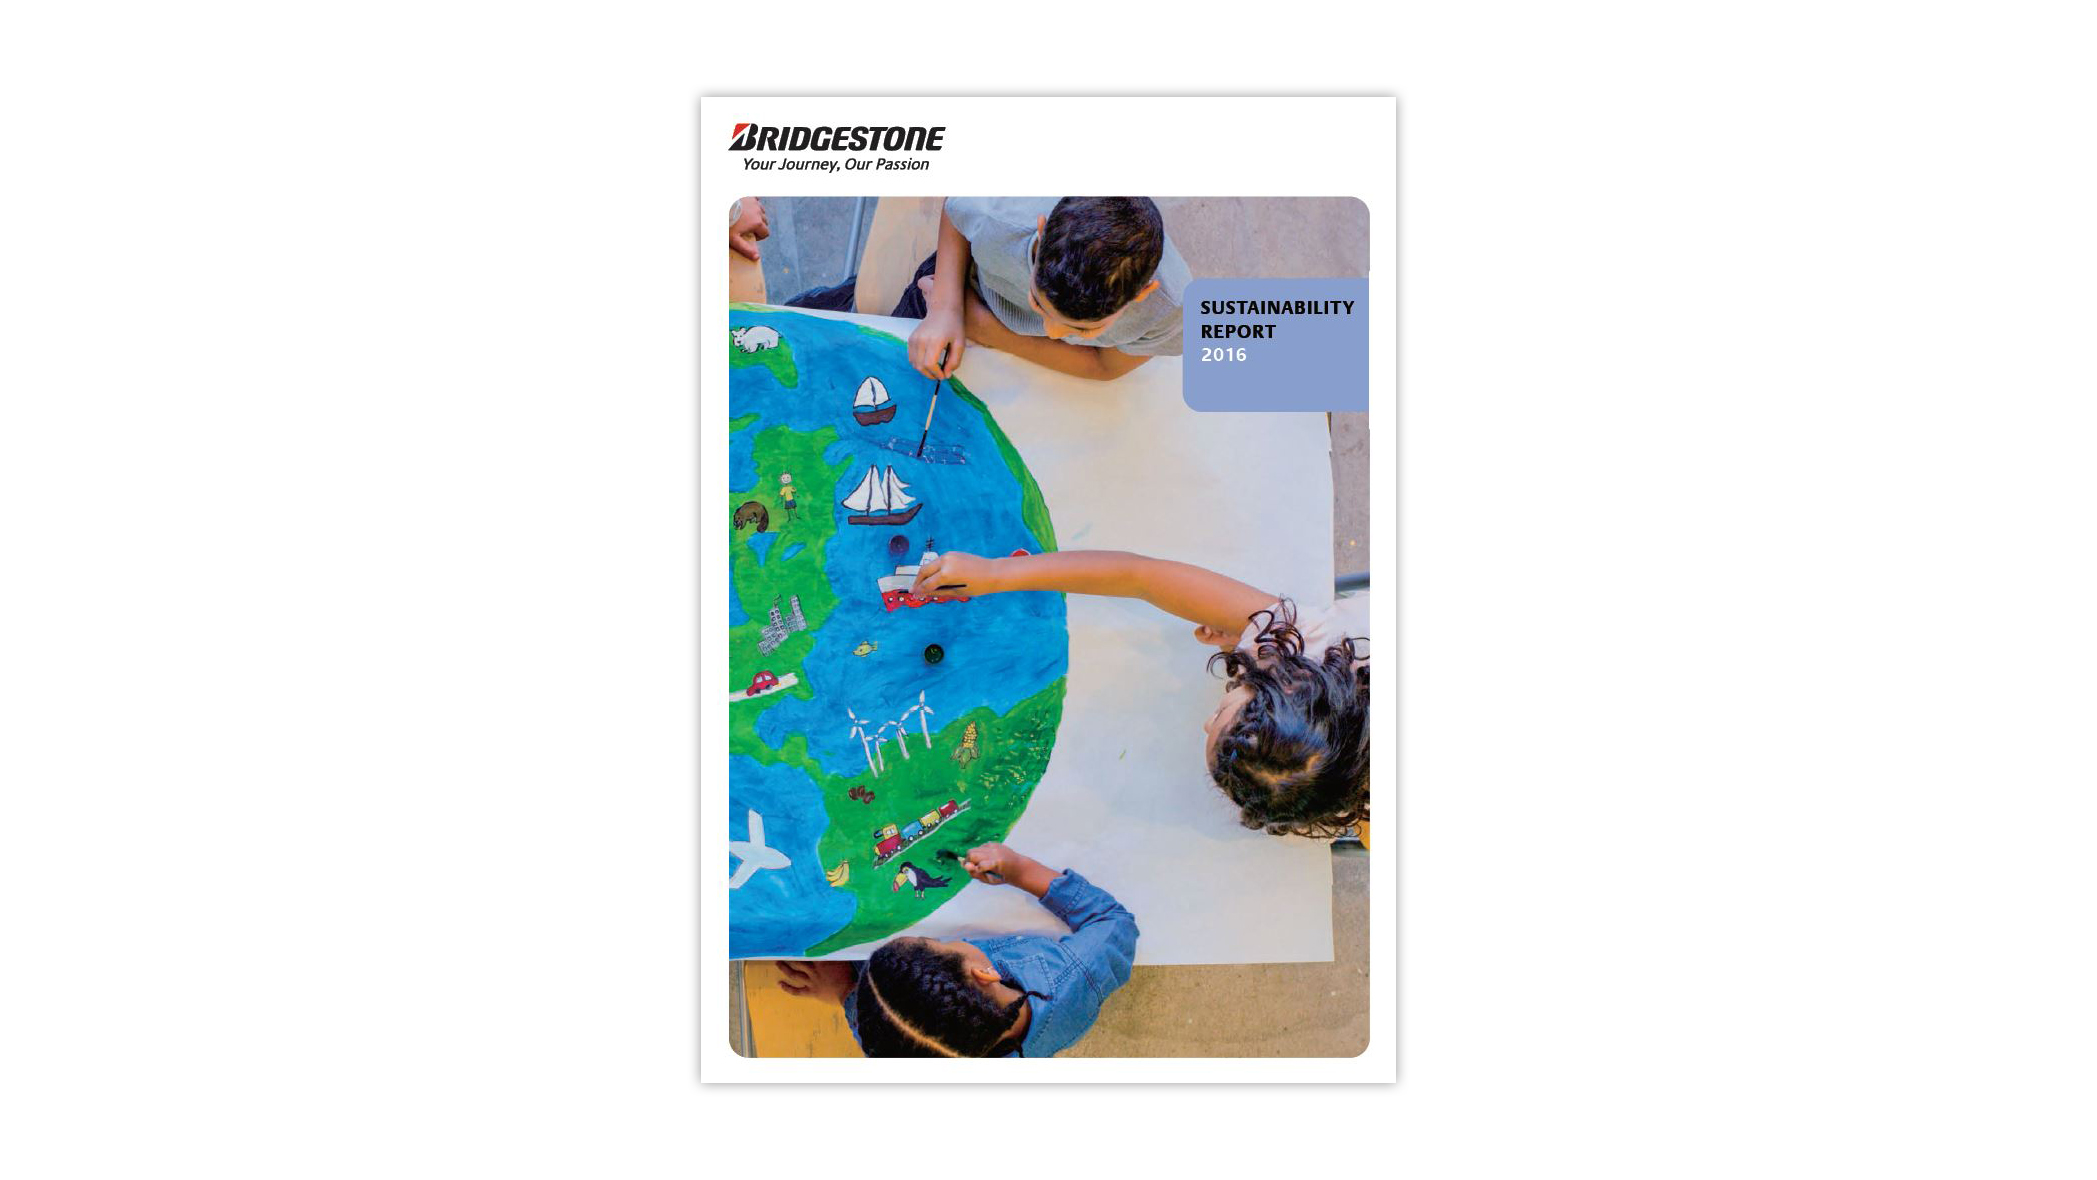 Bridgestone 2016 CSR Report cover